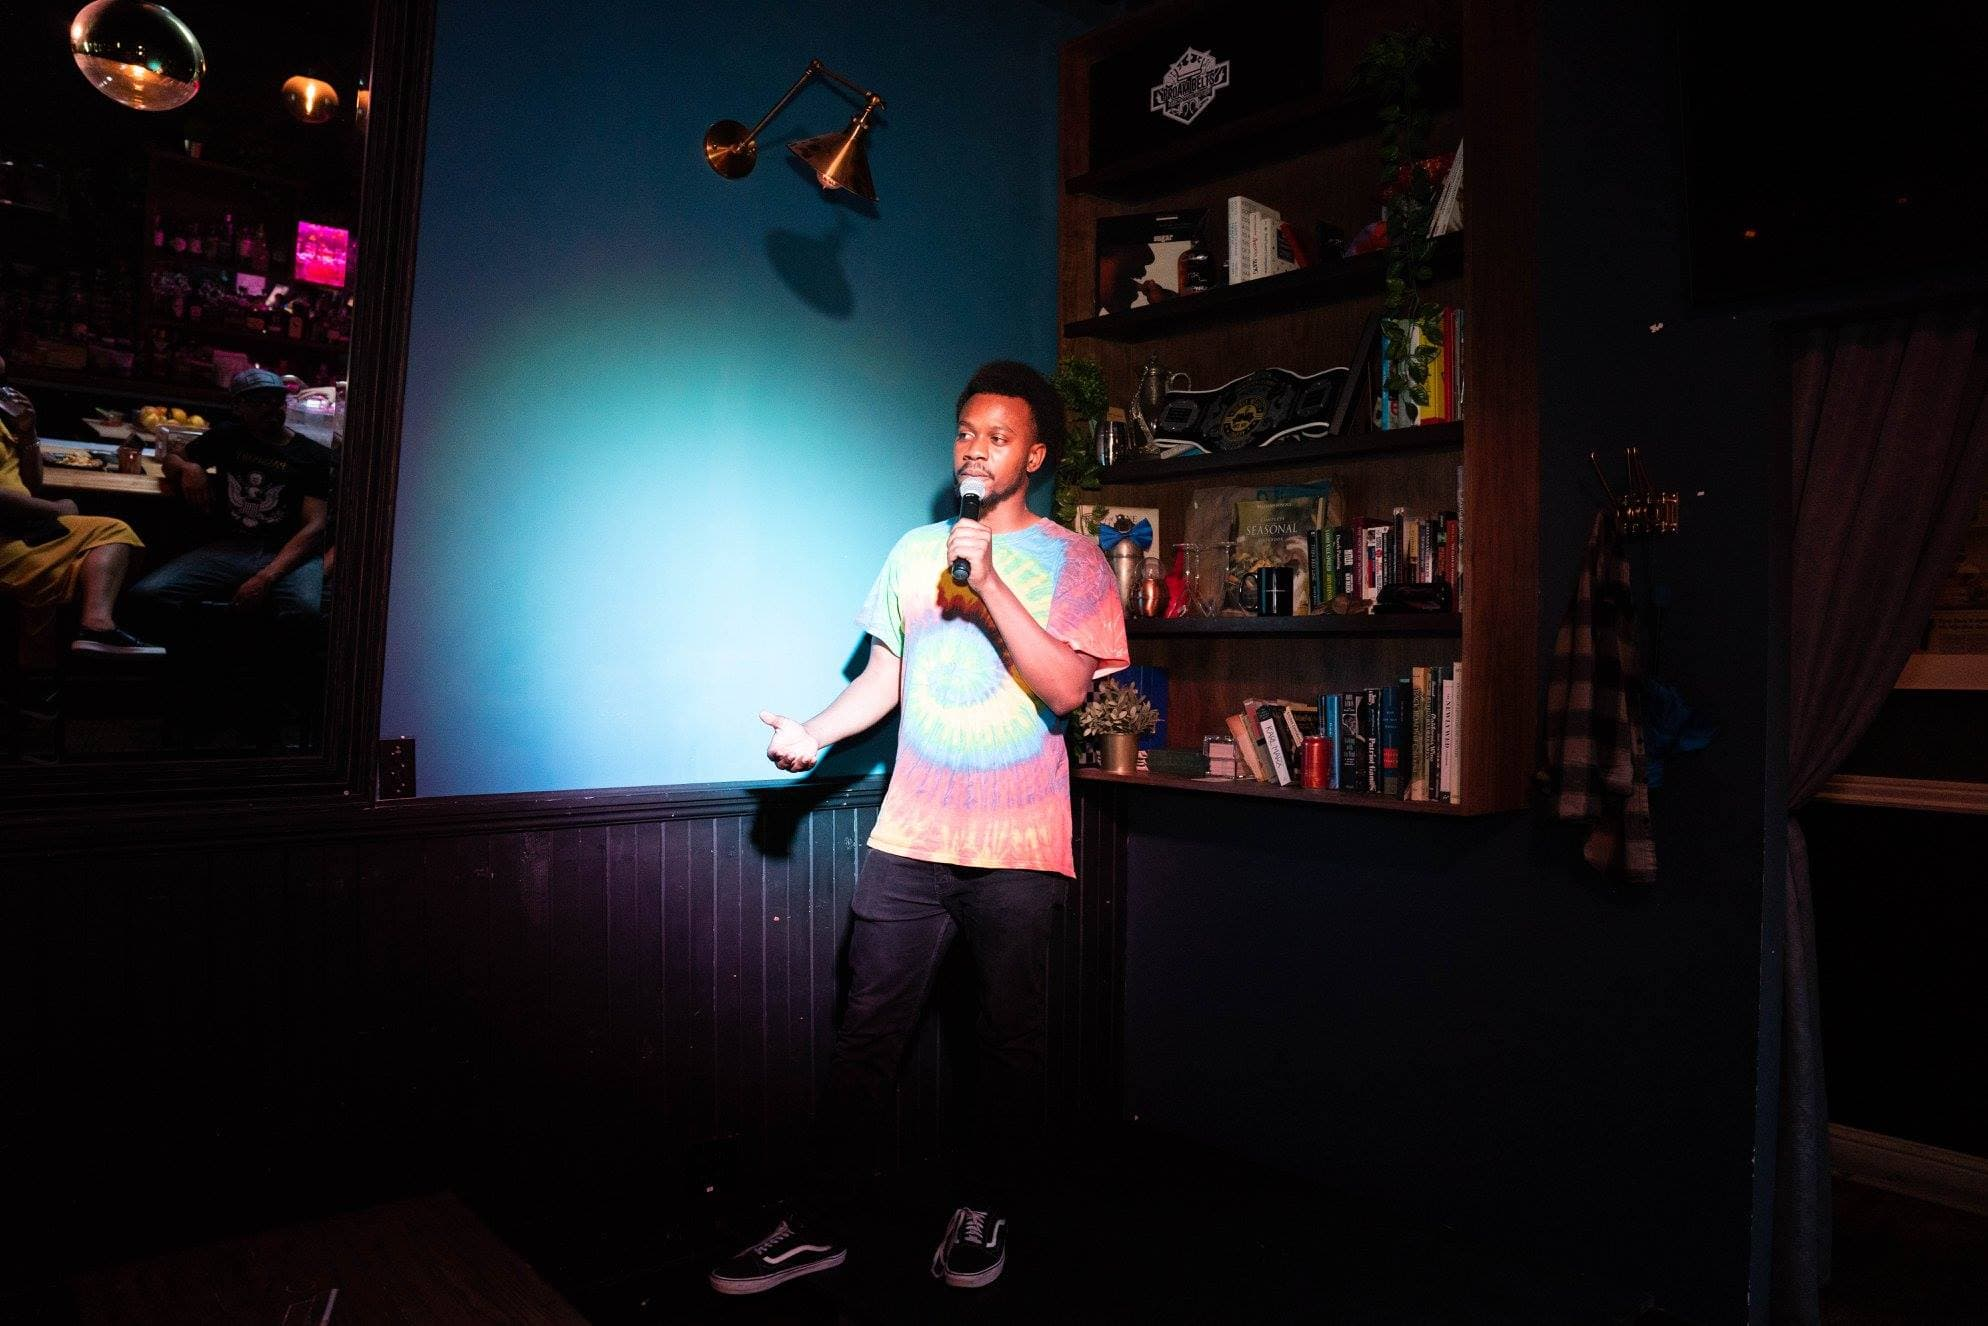 Mike Evans Jr. Dropping a set at Craftwork Comedy